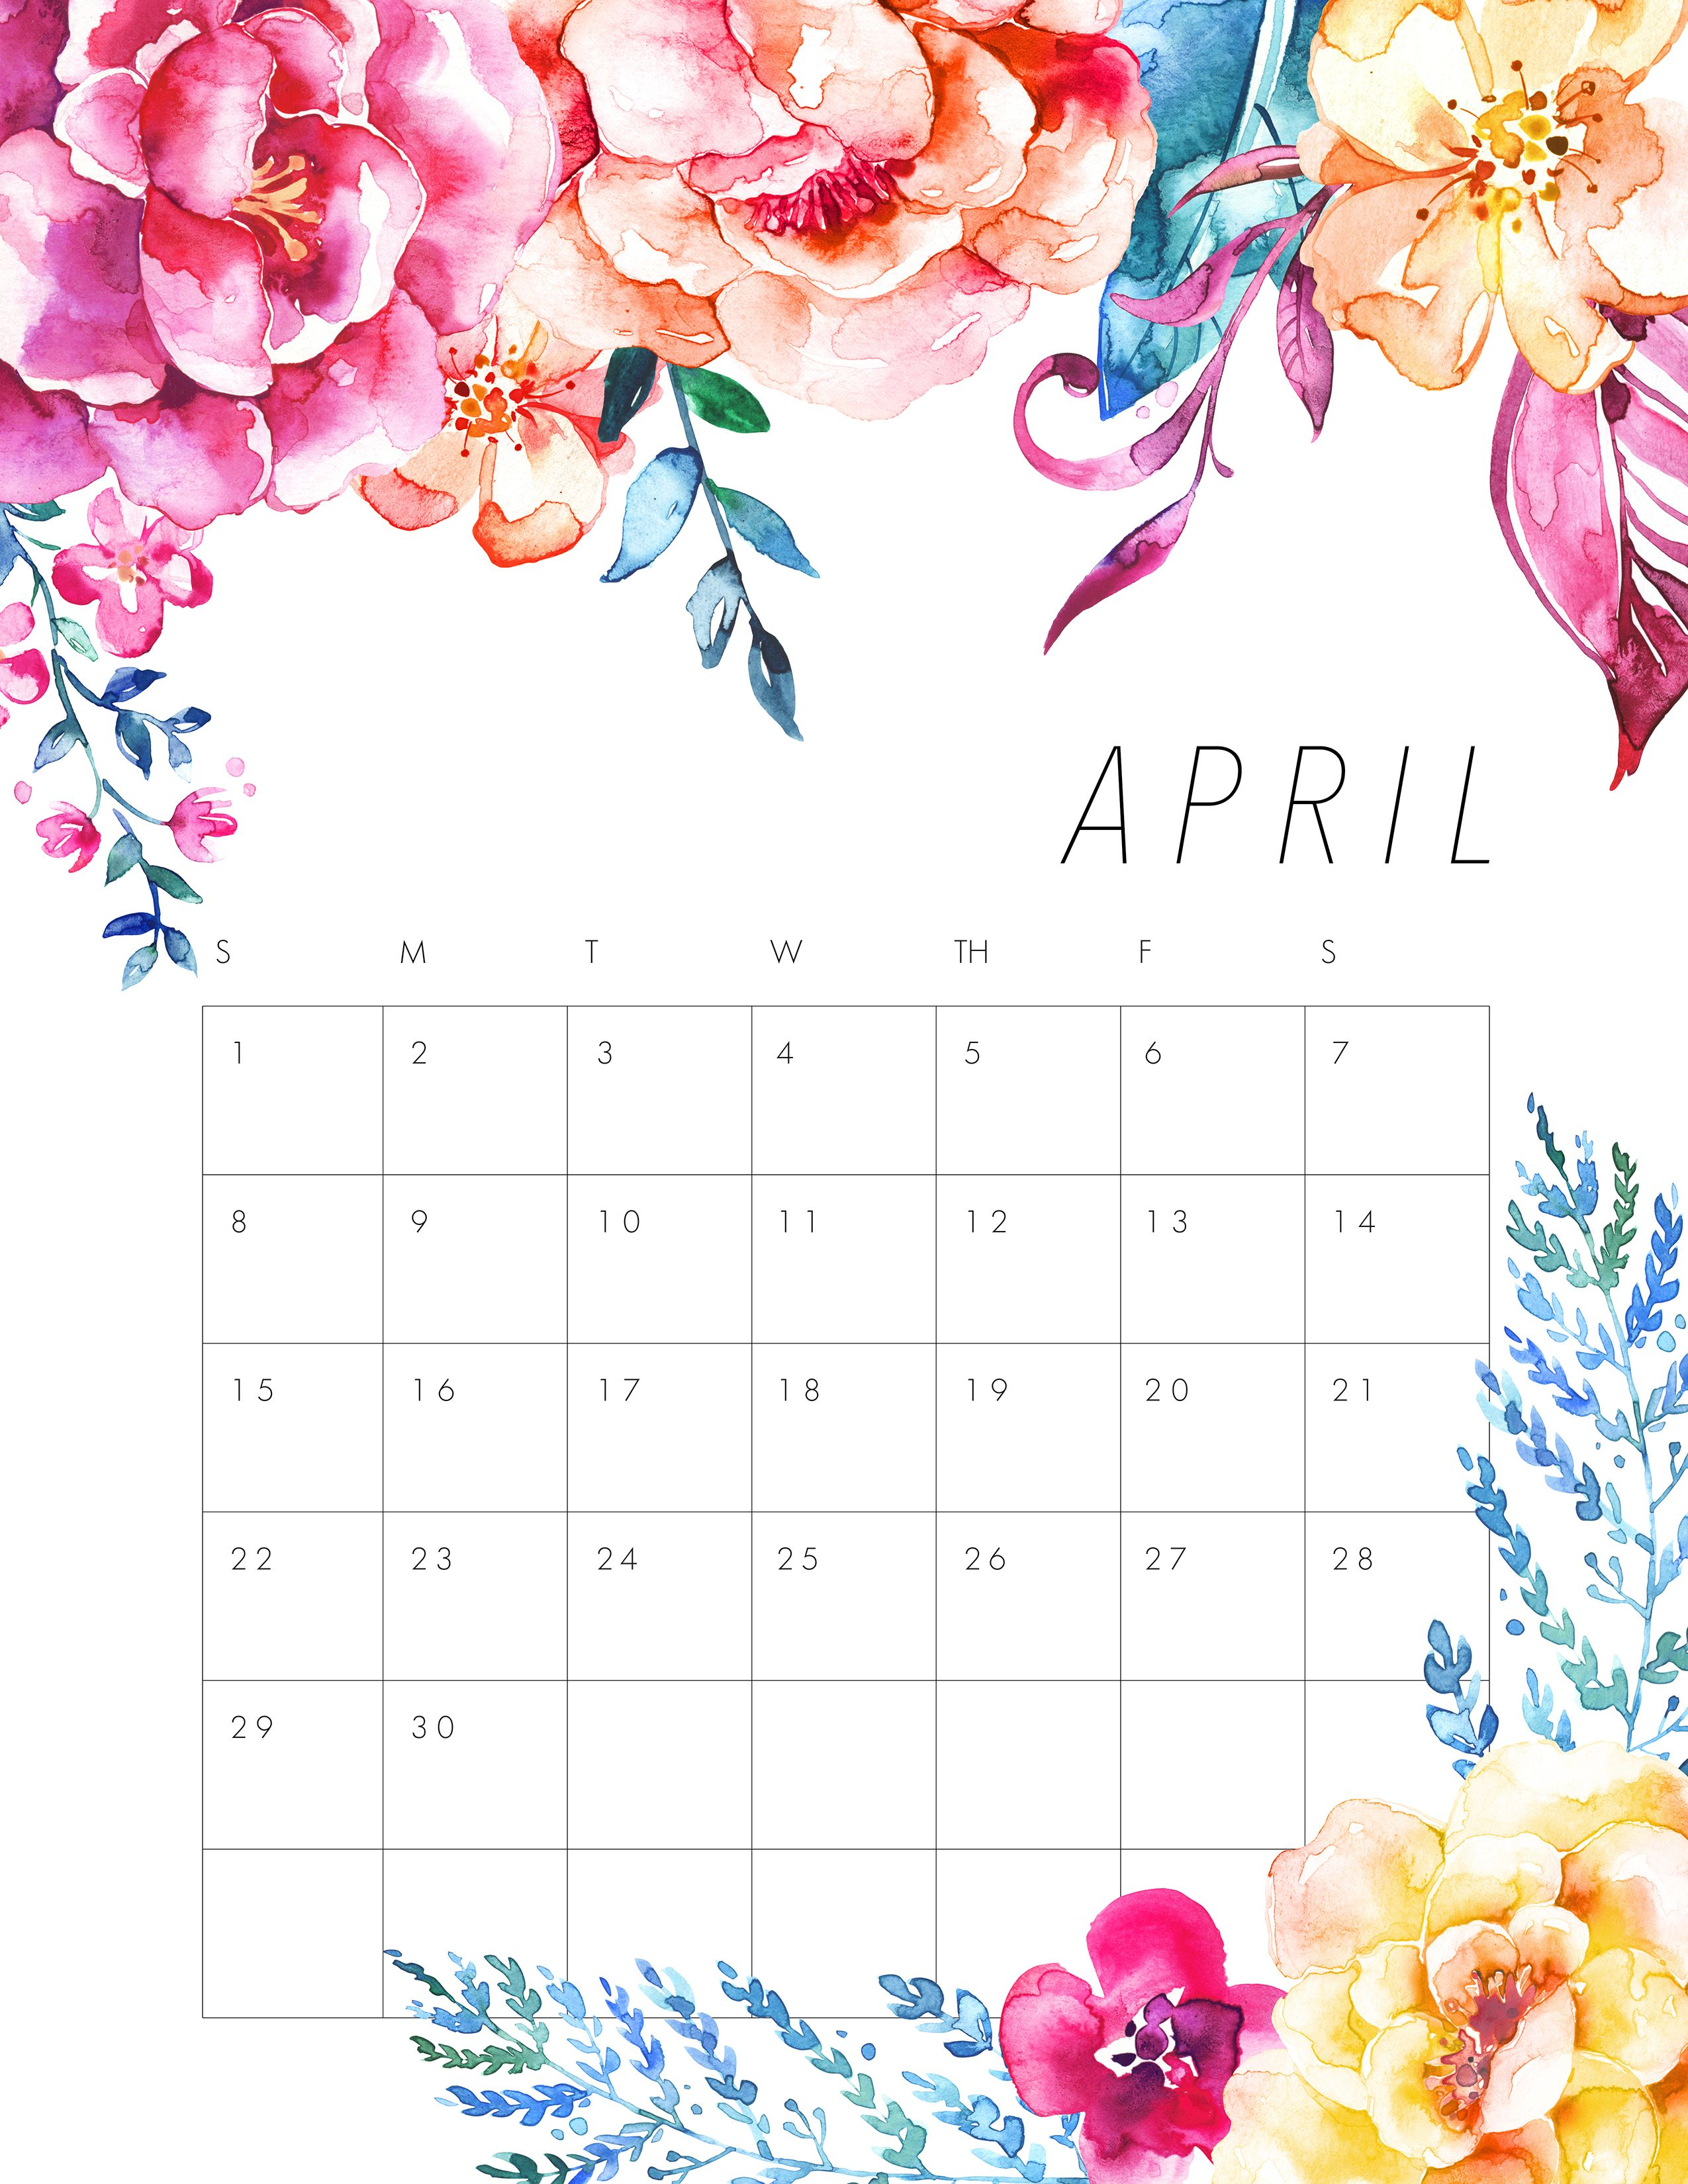 Calendar clipart april 2017, Calendar april 2017 Transparent.